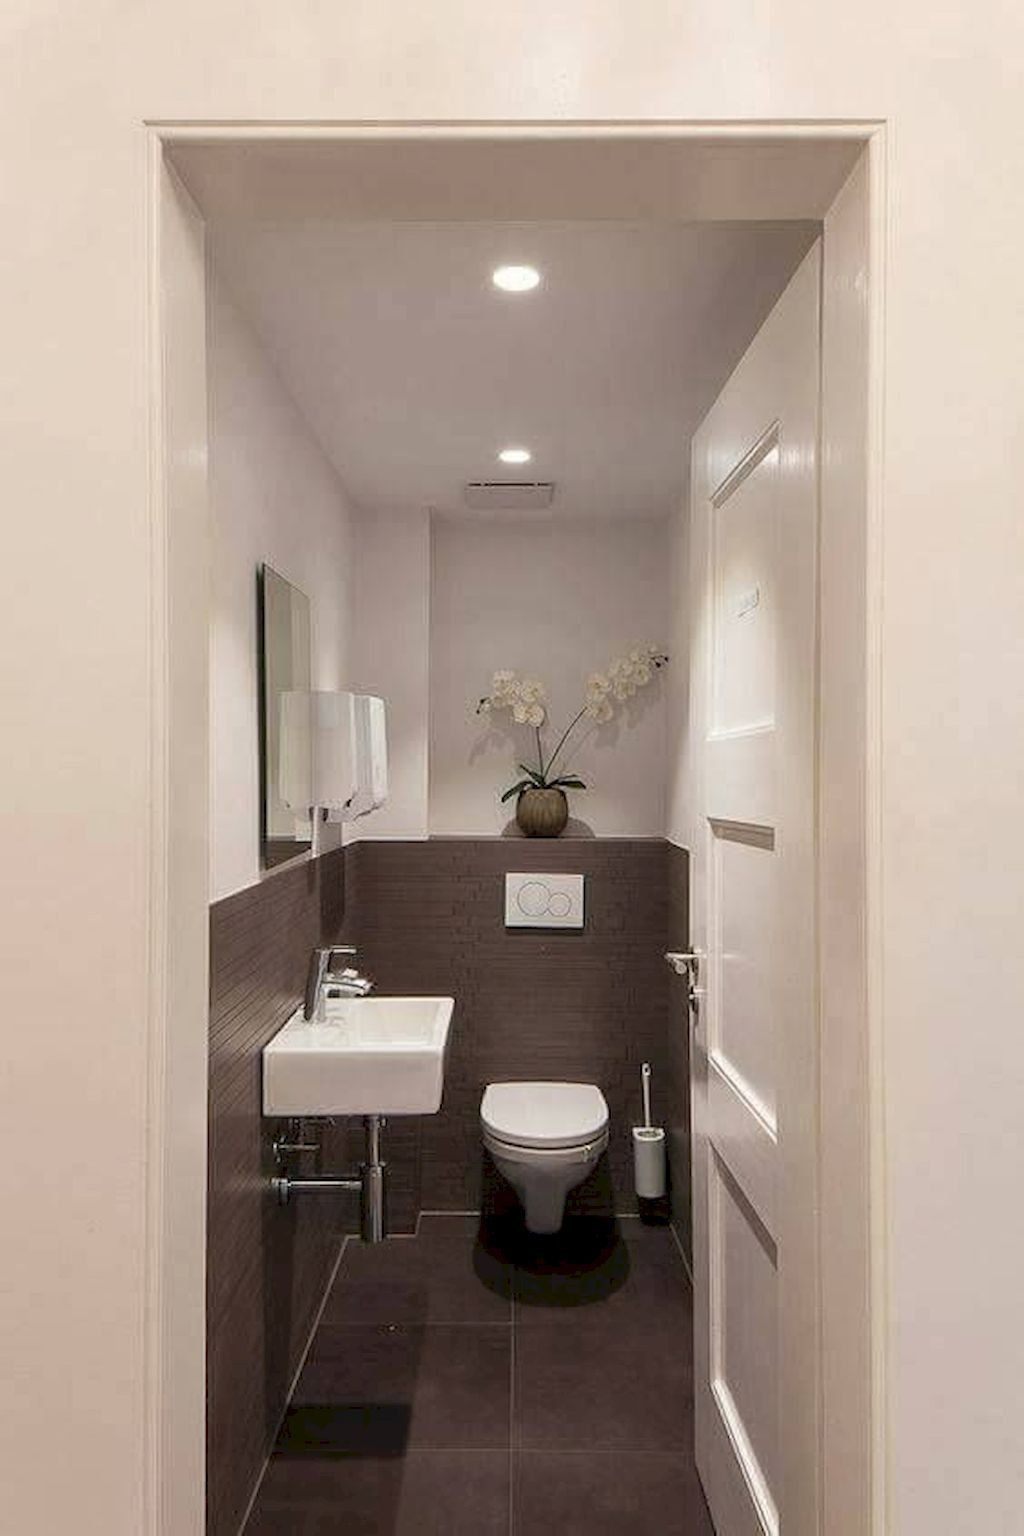 Space Saving Toilet Design For Small Bathroom Small Toilet Room